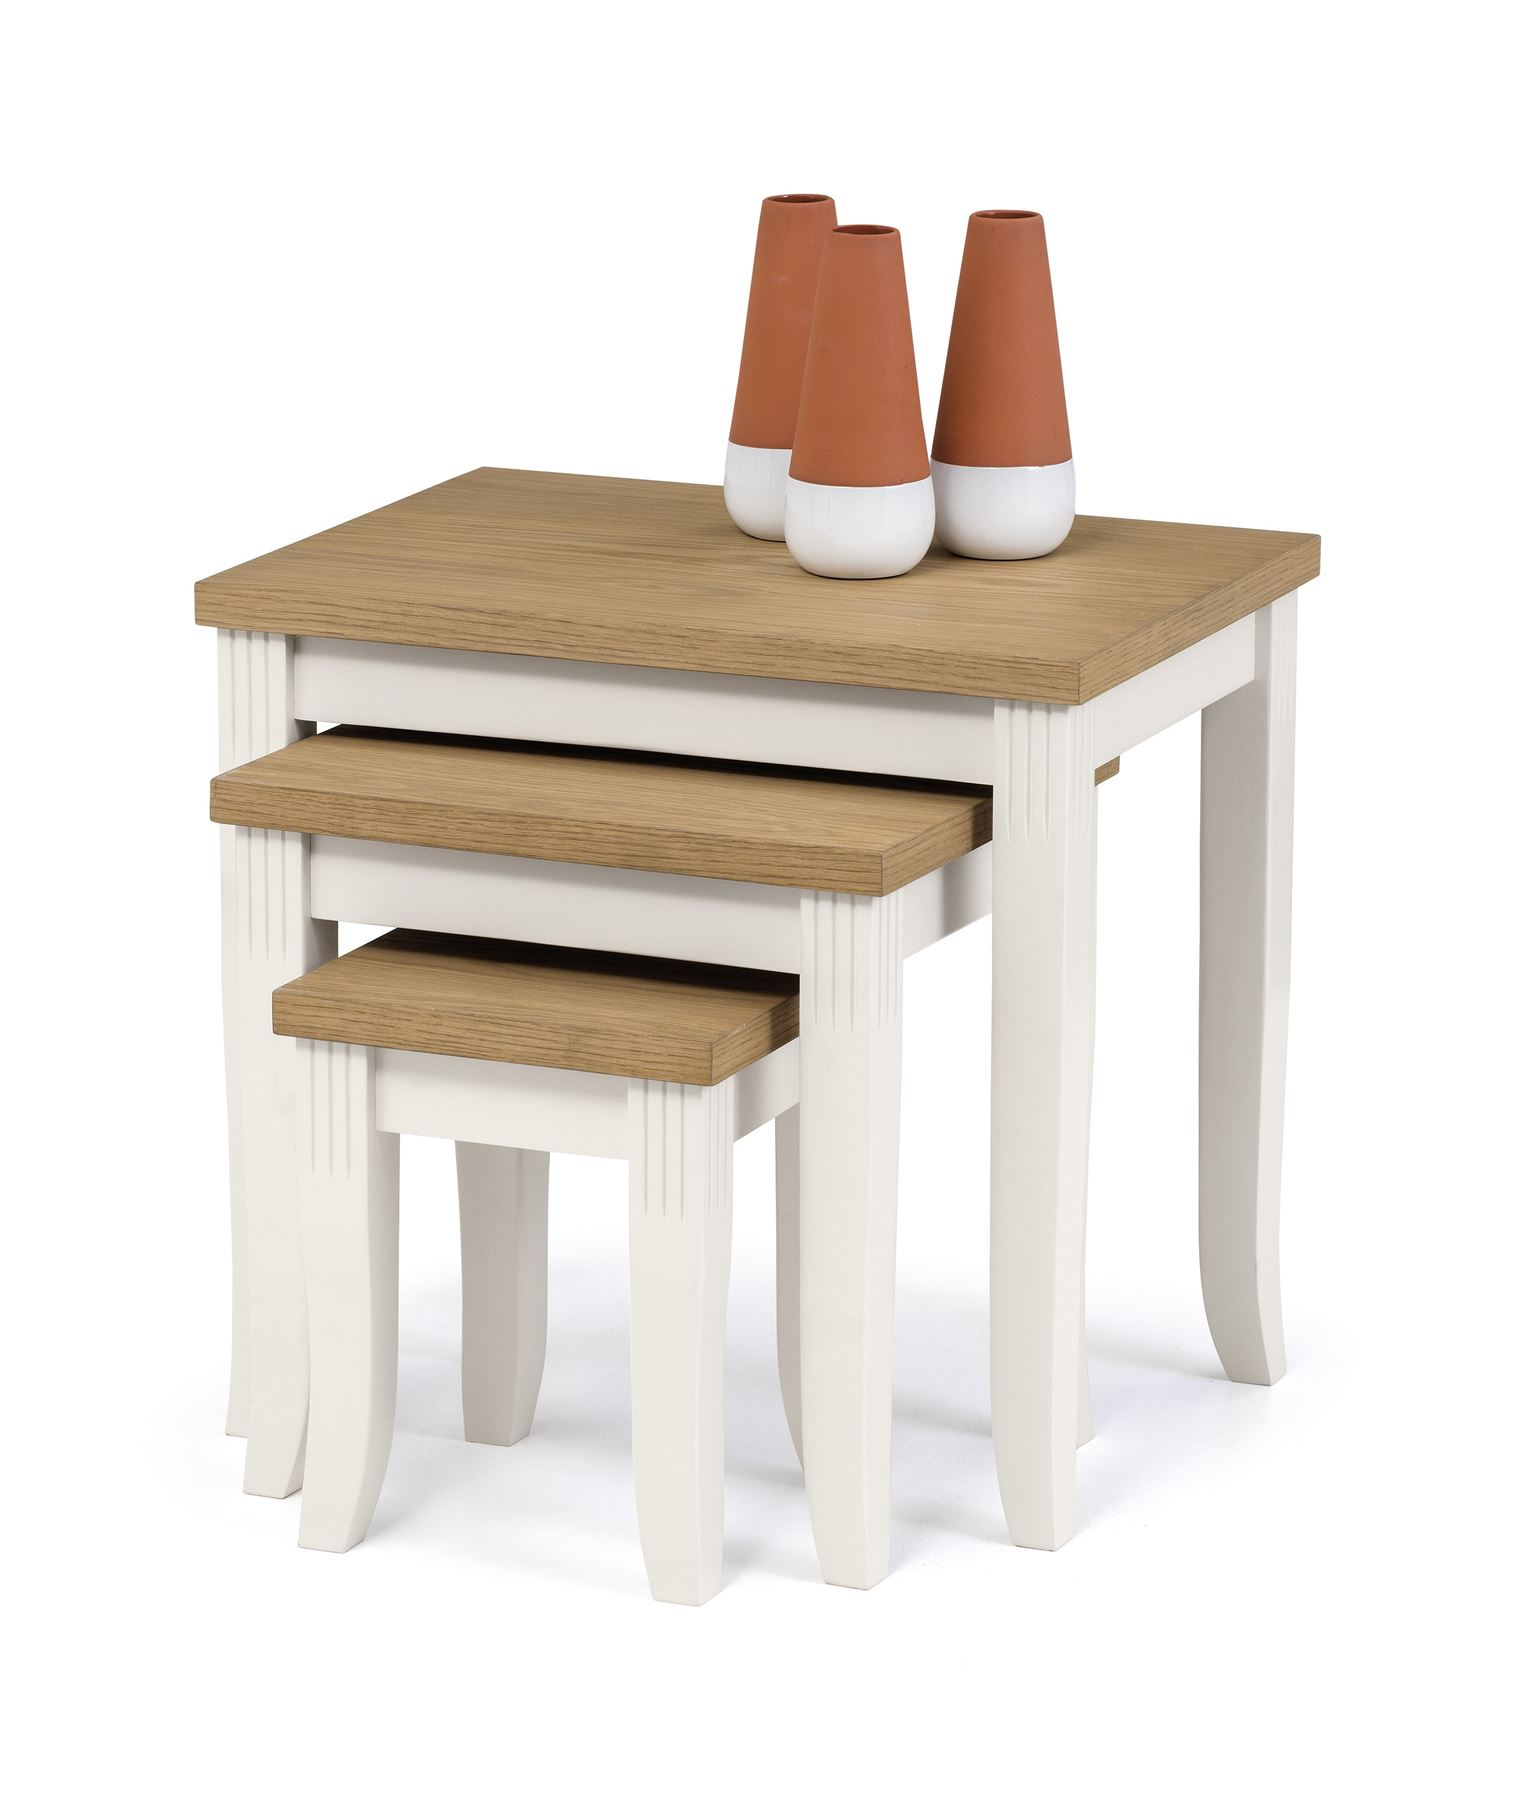 Julian Bowen Davenport Oak Ivory Nested Nest of 3 Tables Solid Wood